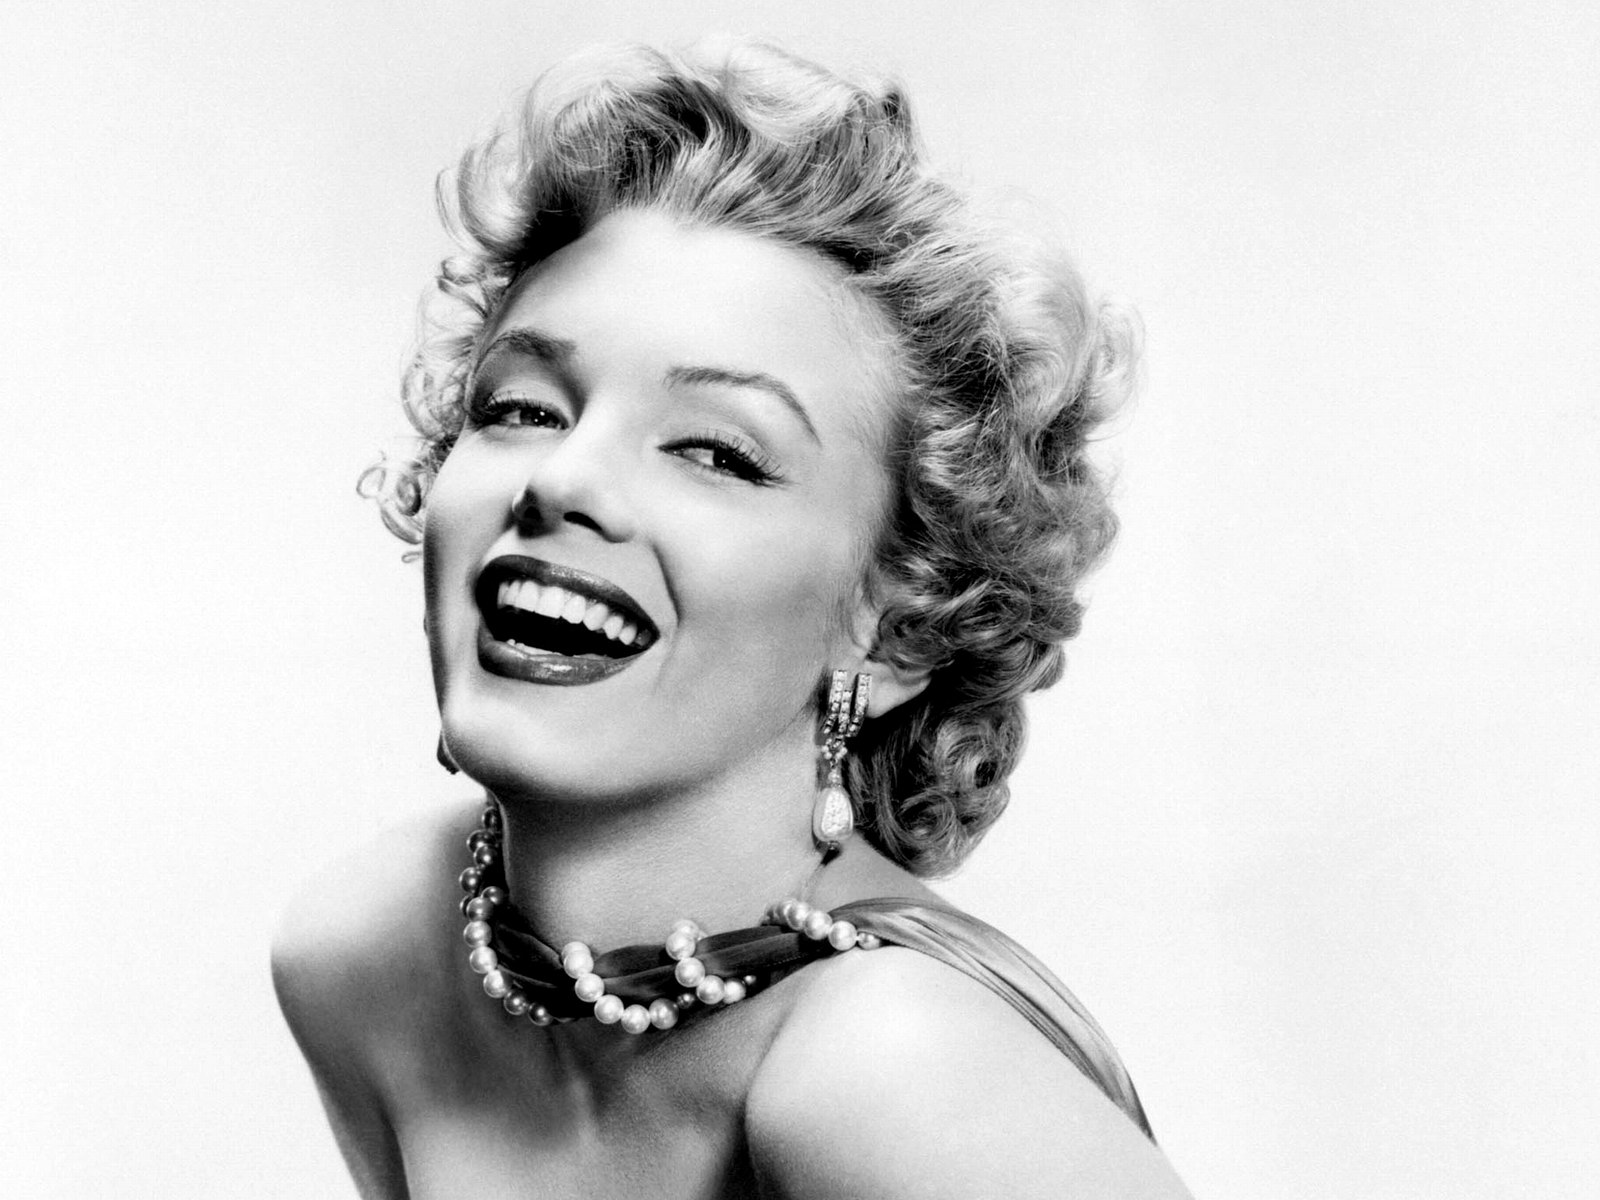 http://2.bp.blogspot.com/-TBXS_PzAp1k/T8WOk_PMs3I/AAAAAAAAQvs/iyrxVlF4hPc/s1600/Marilyn-Monroe-New-2012-Black-and-White-Wallpapers3.jpg